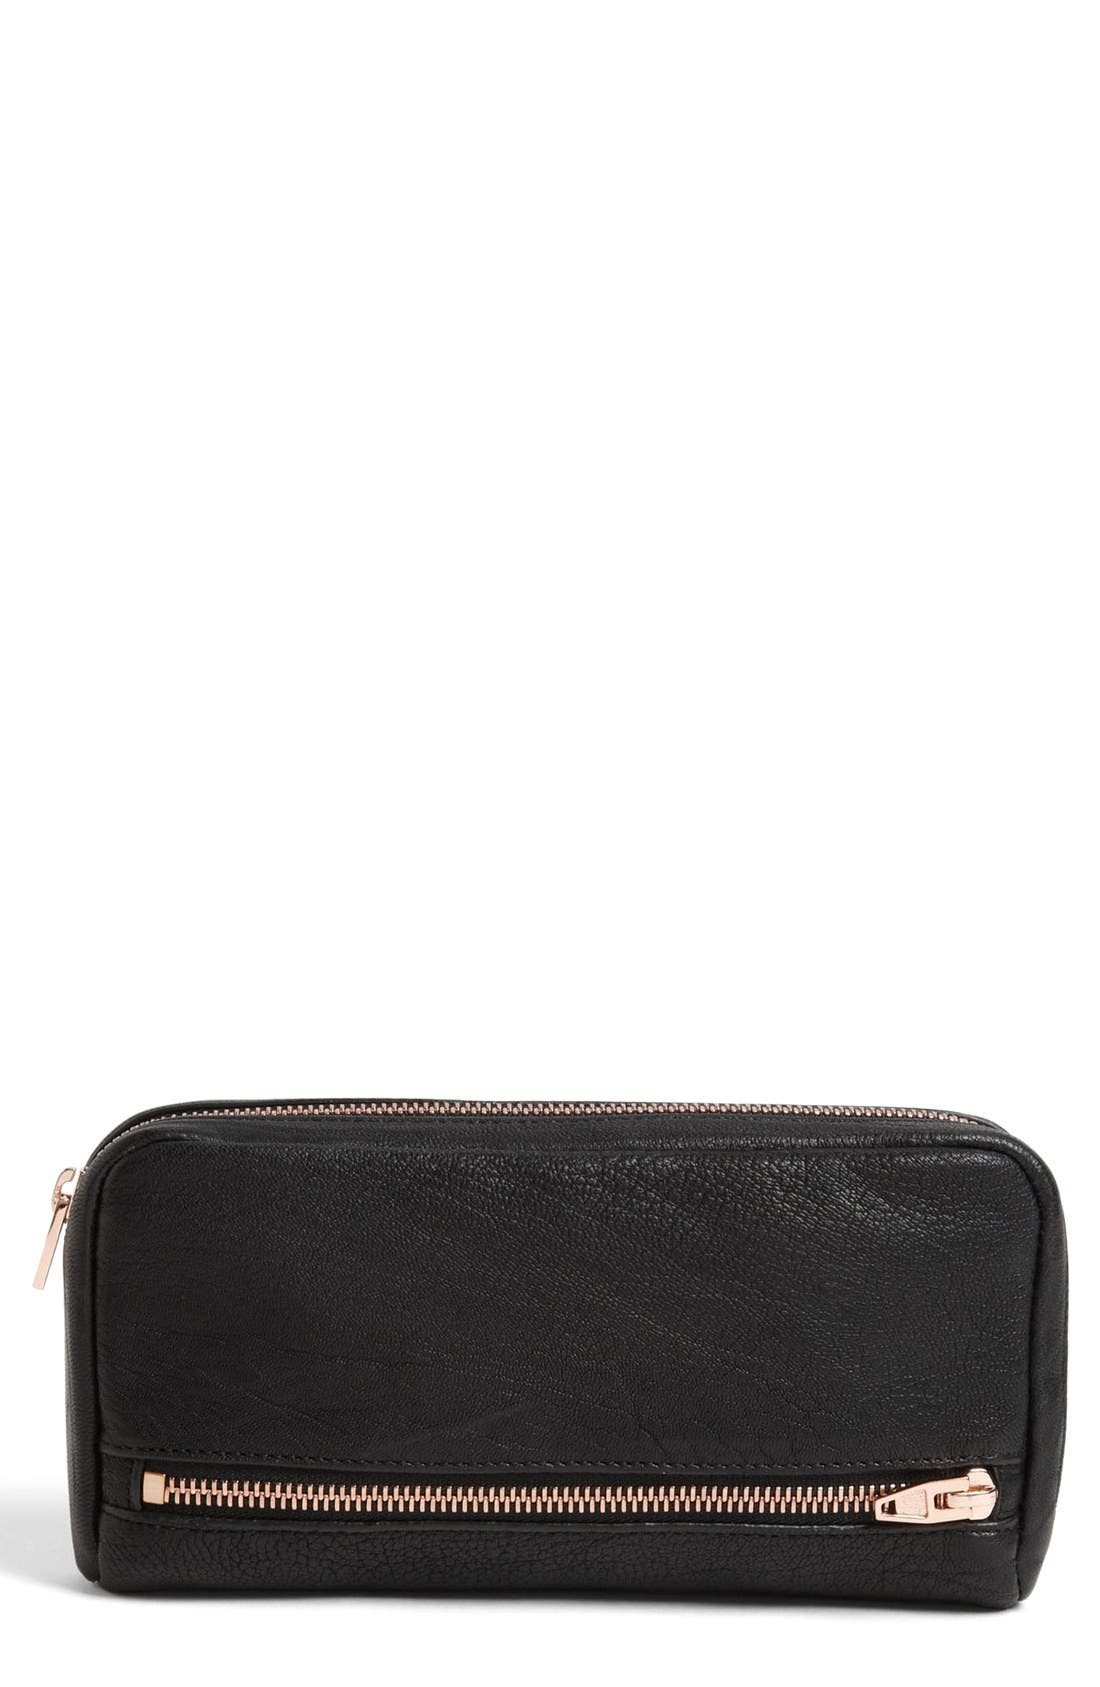 Alternate Image 1 Selected - Alexander Wang 'Fumo' Zip Top Leather Pouch Wallet